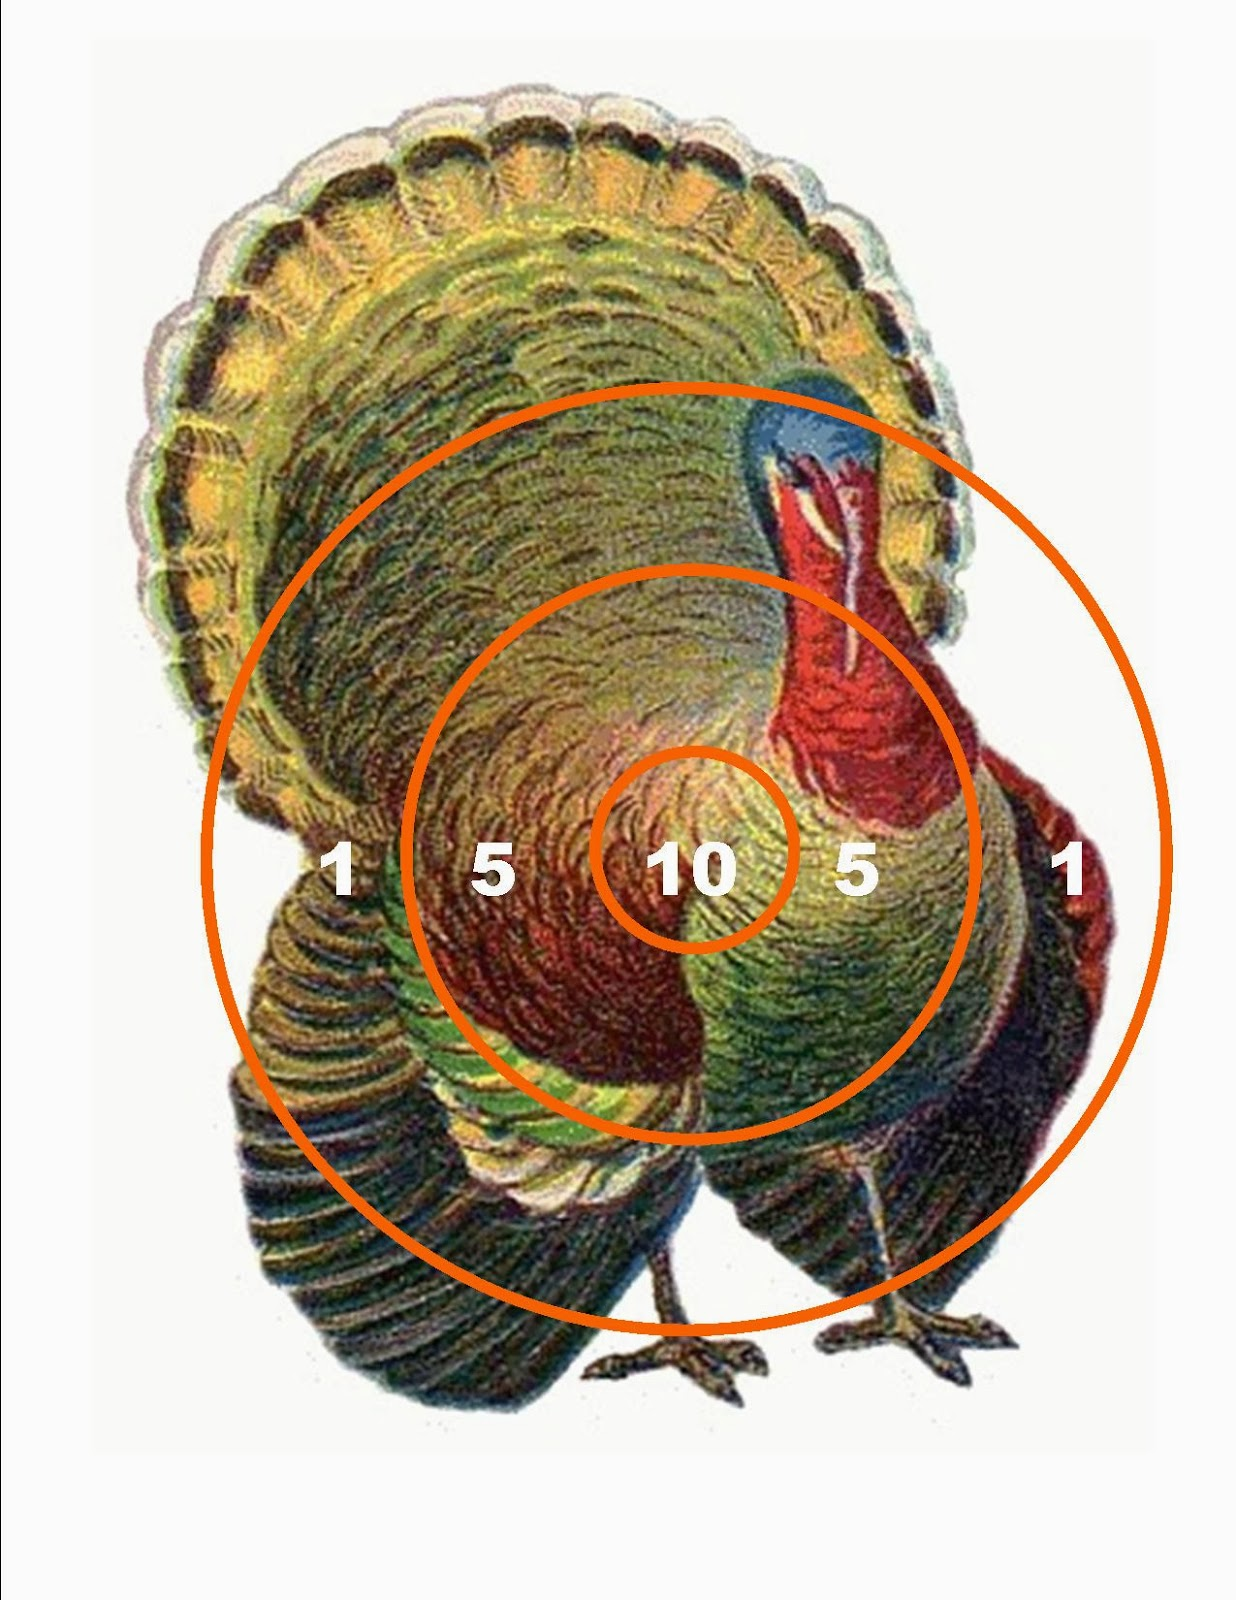 It's just an image of Delicate Free Printable Turkey Shoot Targets